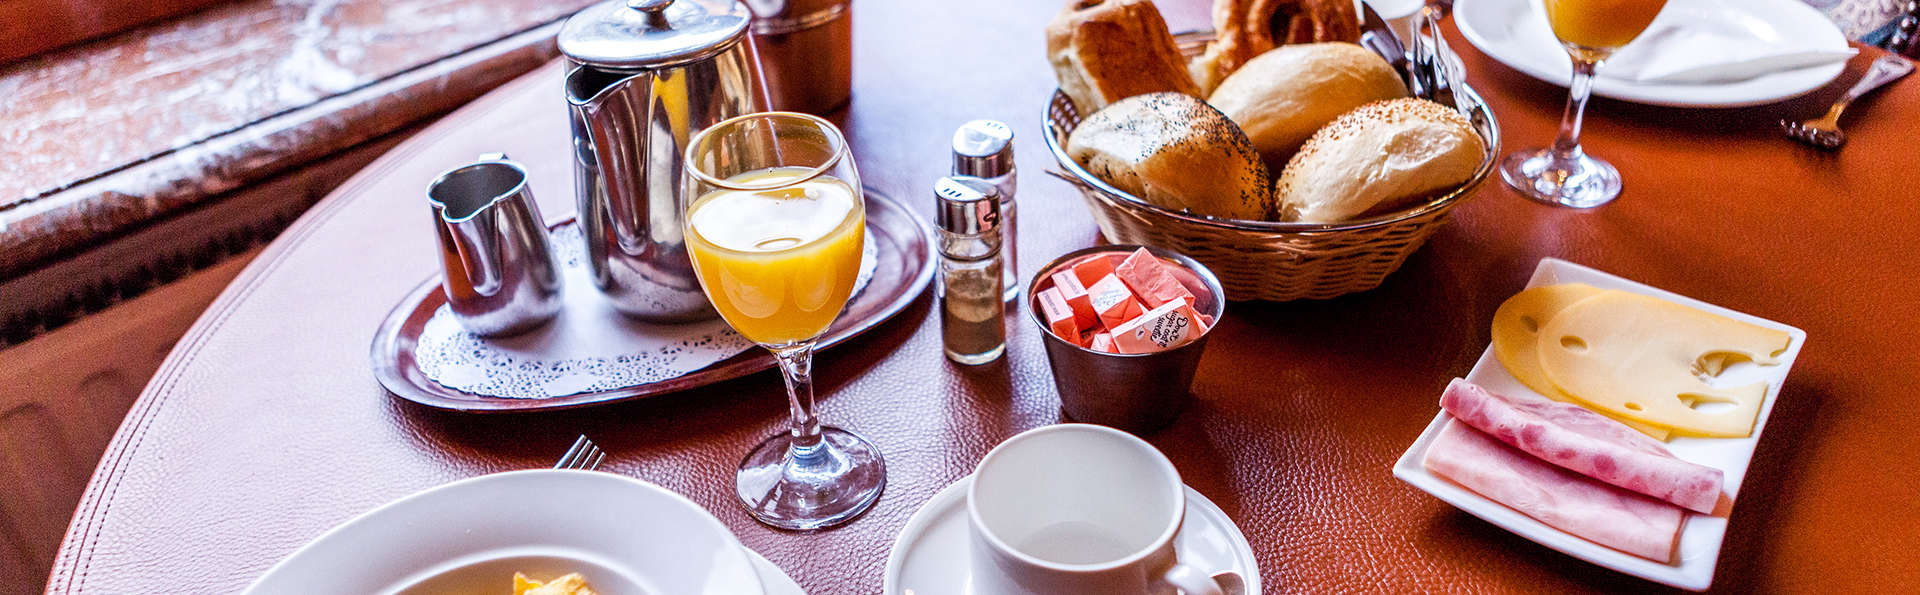 Avenue Boutique Hotel - EDIT_N2_BREAKFAST2.jpg